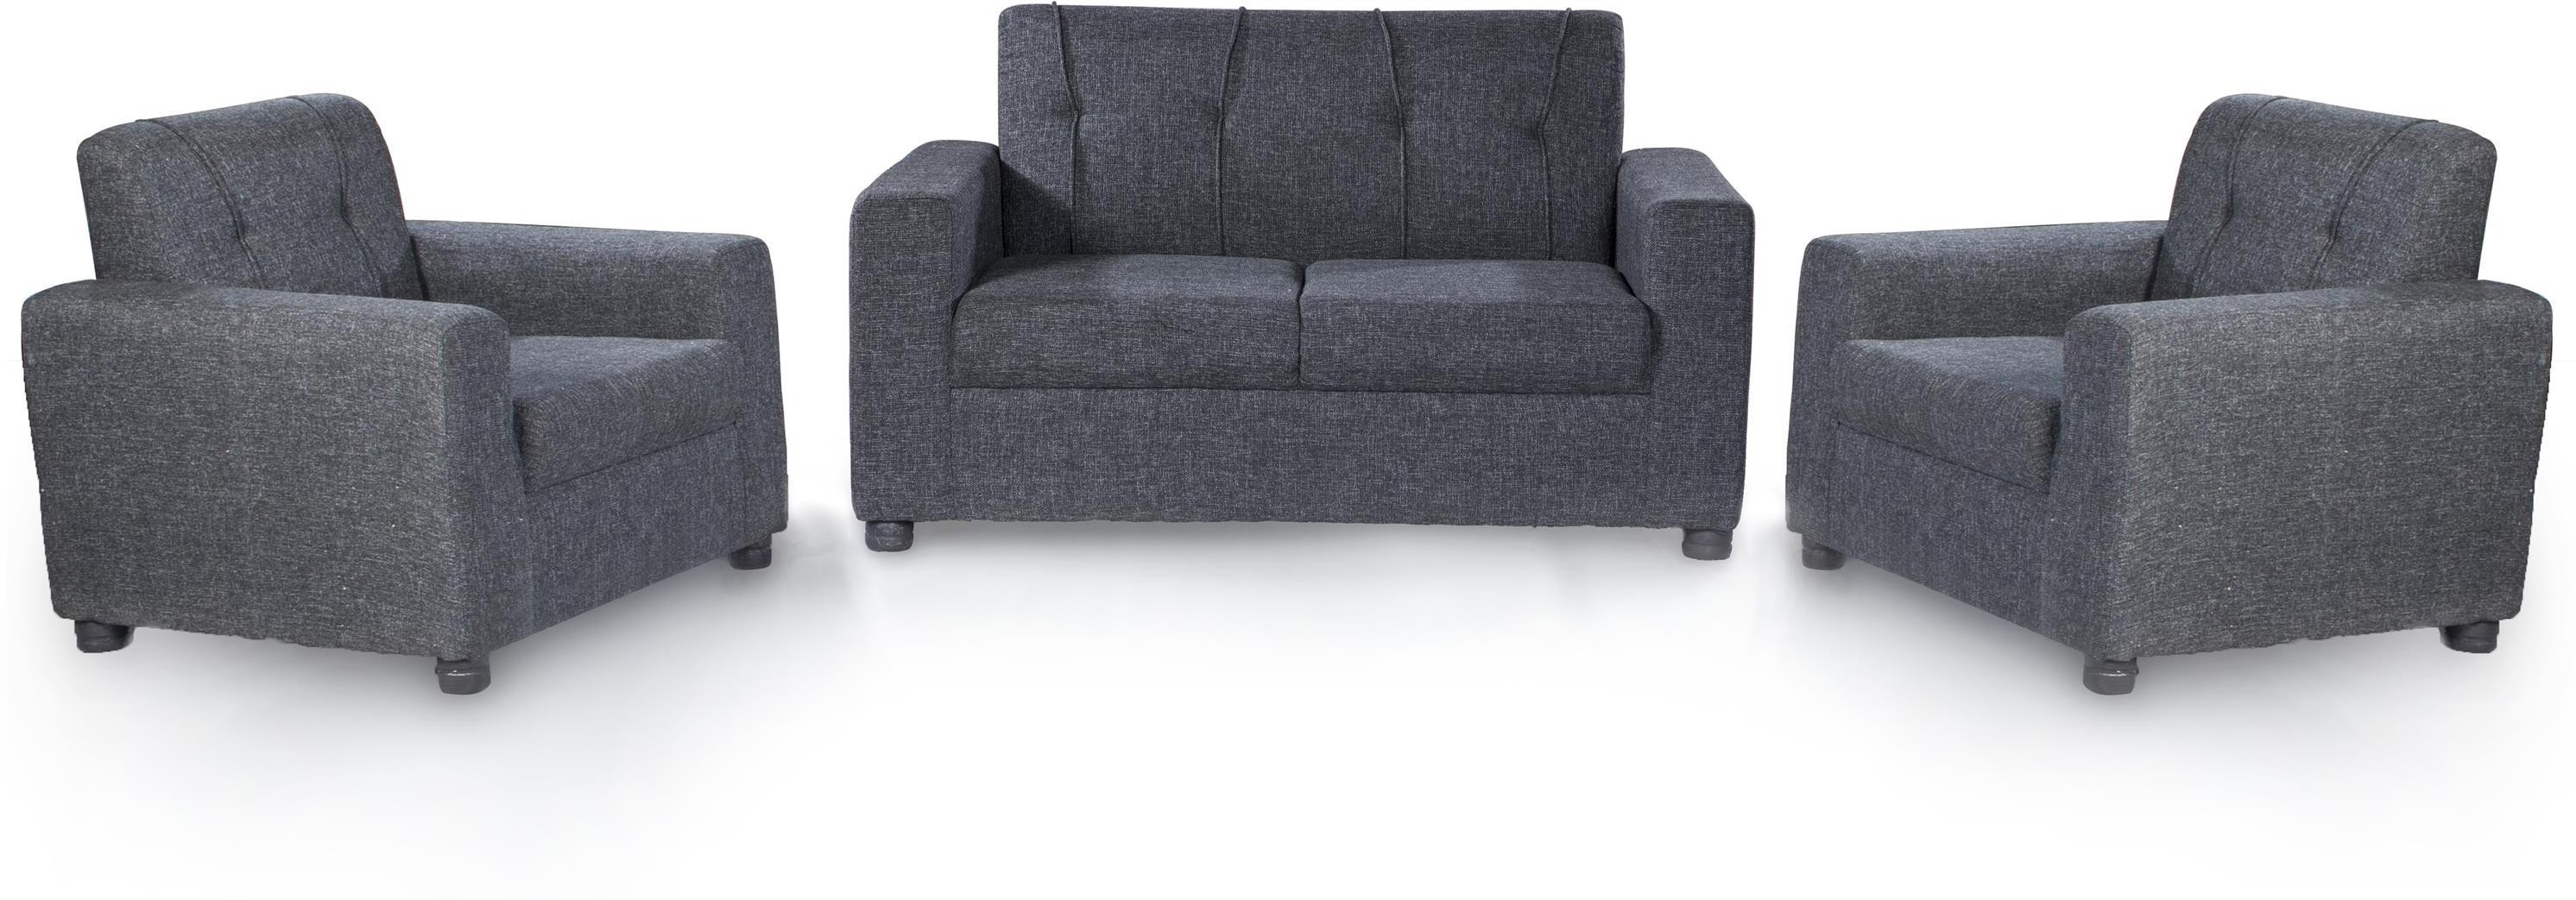 View Furnicity Fabric 2 + 1 + 1 Grey Sofa Set(Configuration - Straight) Furniture (Furnicity)